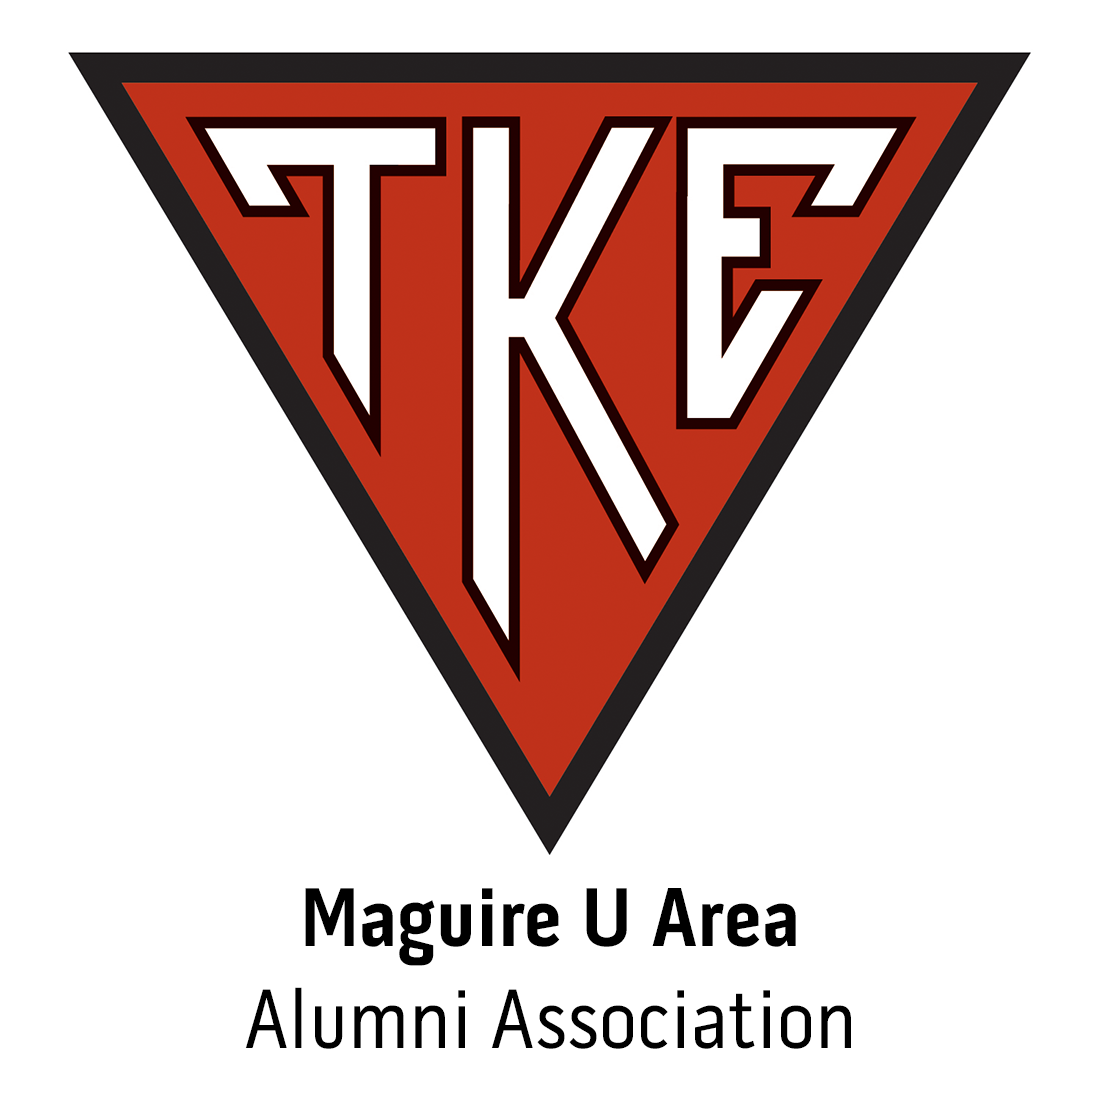 Maguire U Area Alumni Association Alumni at Chicago, IL